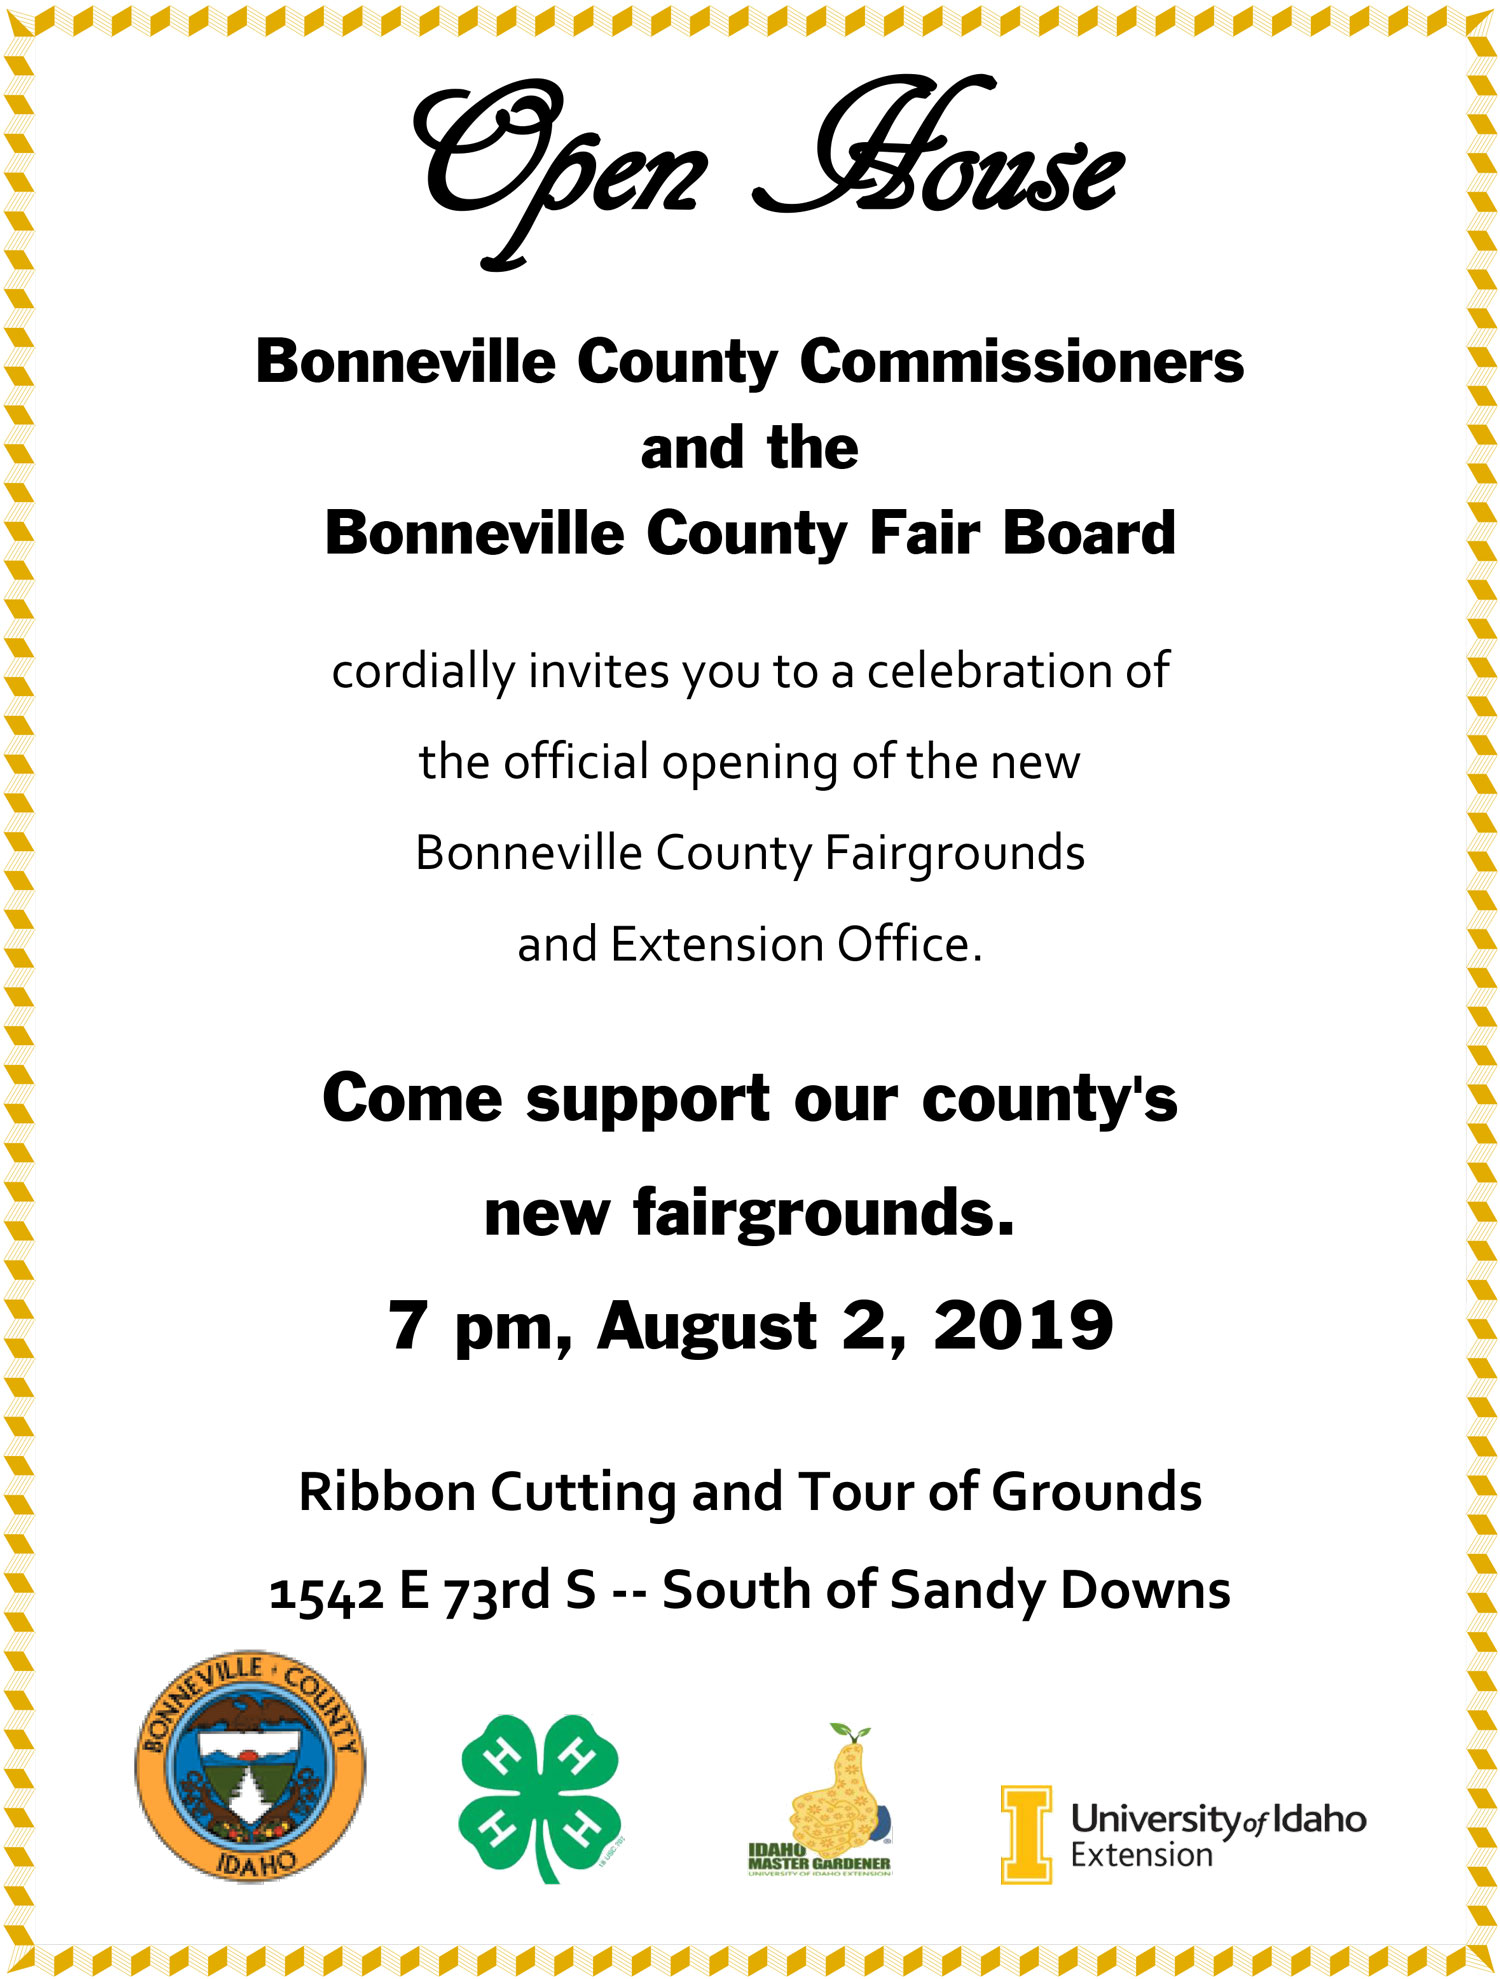 Bonneville-open-house-RIBBON-CUTTING